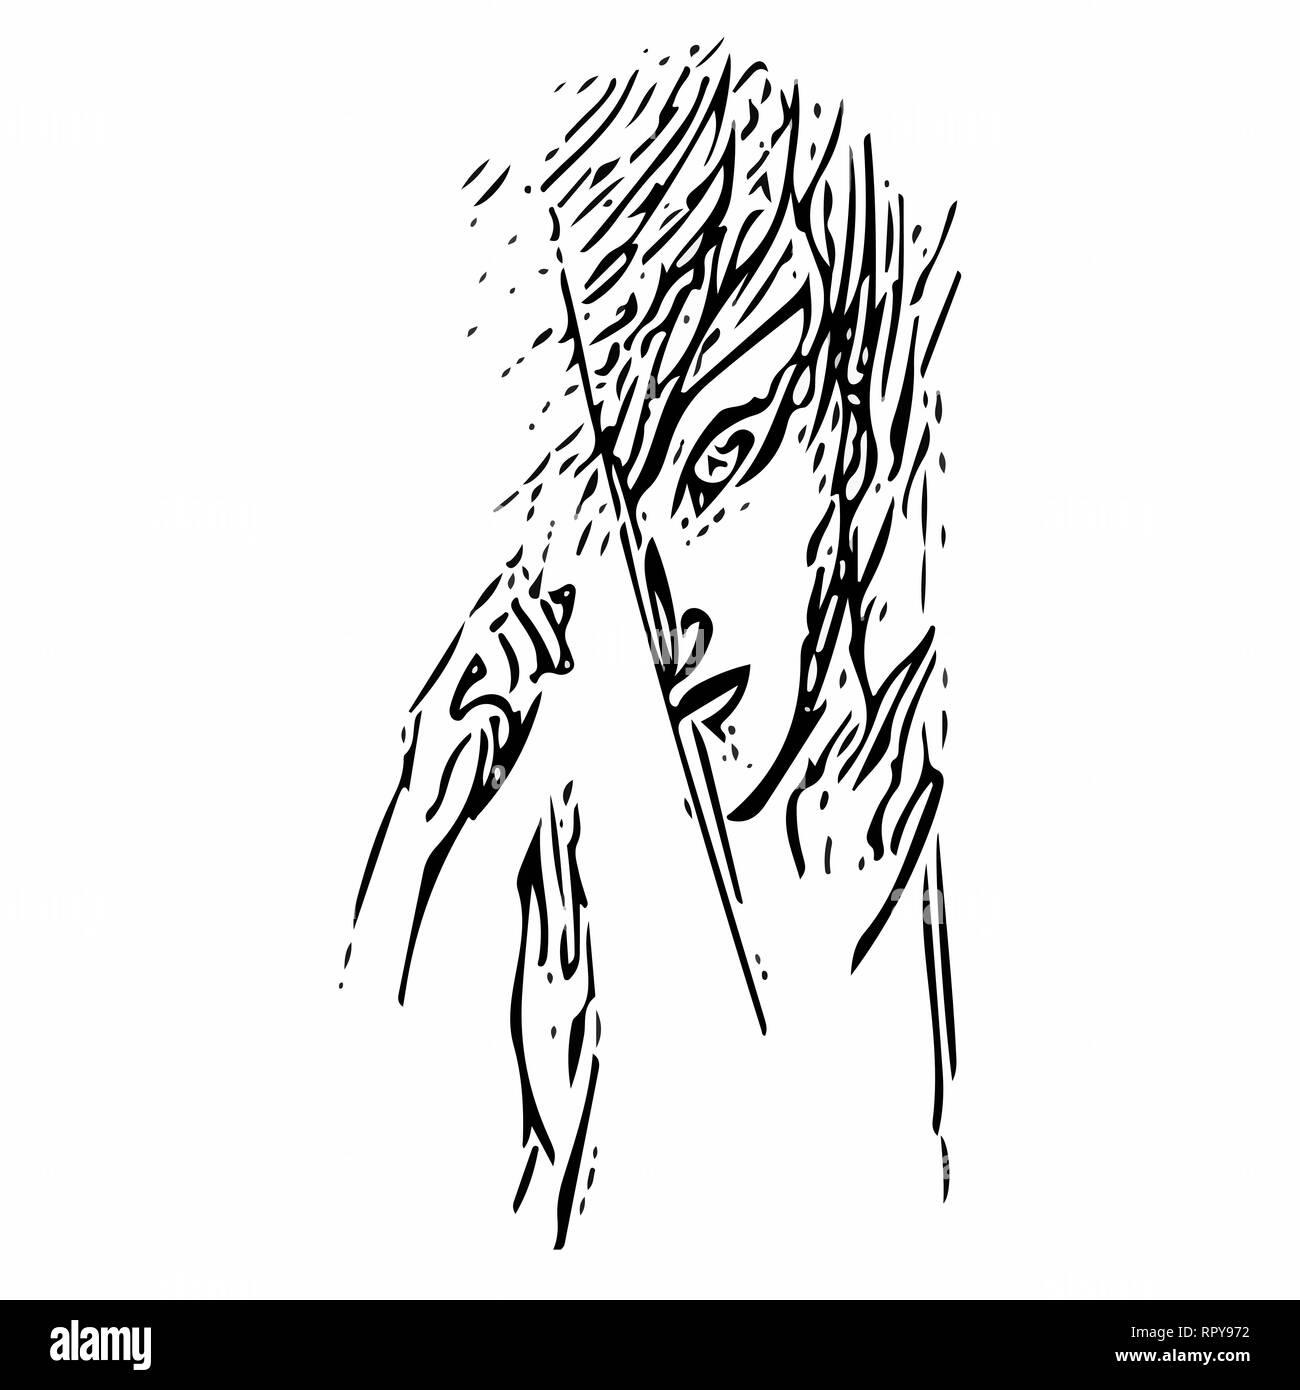 Drawn in vector abstract black and white face looking into the gap anime